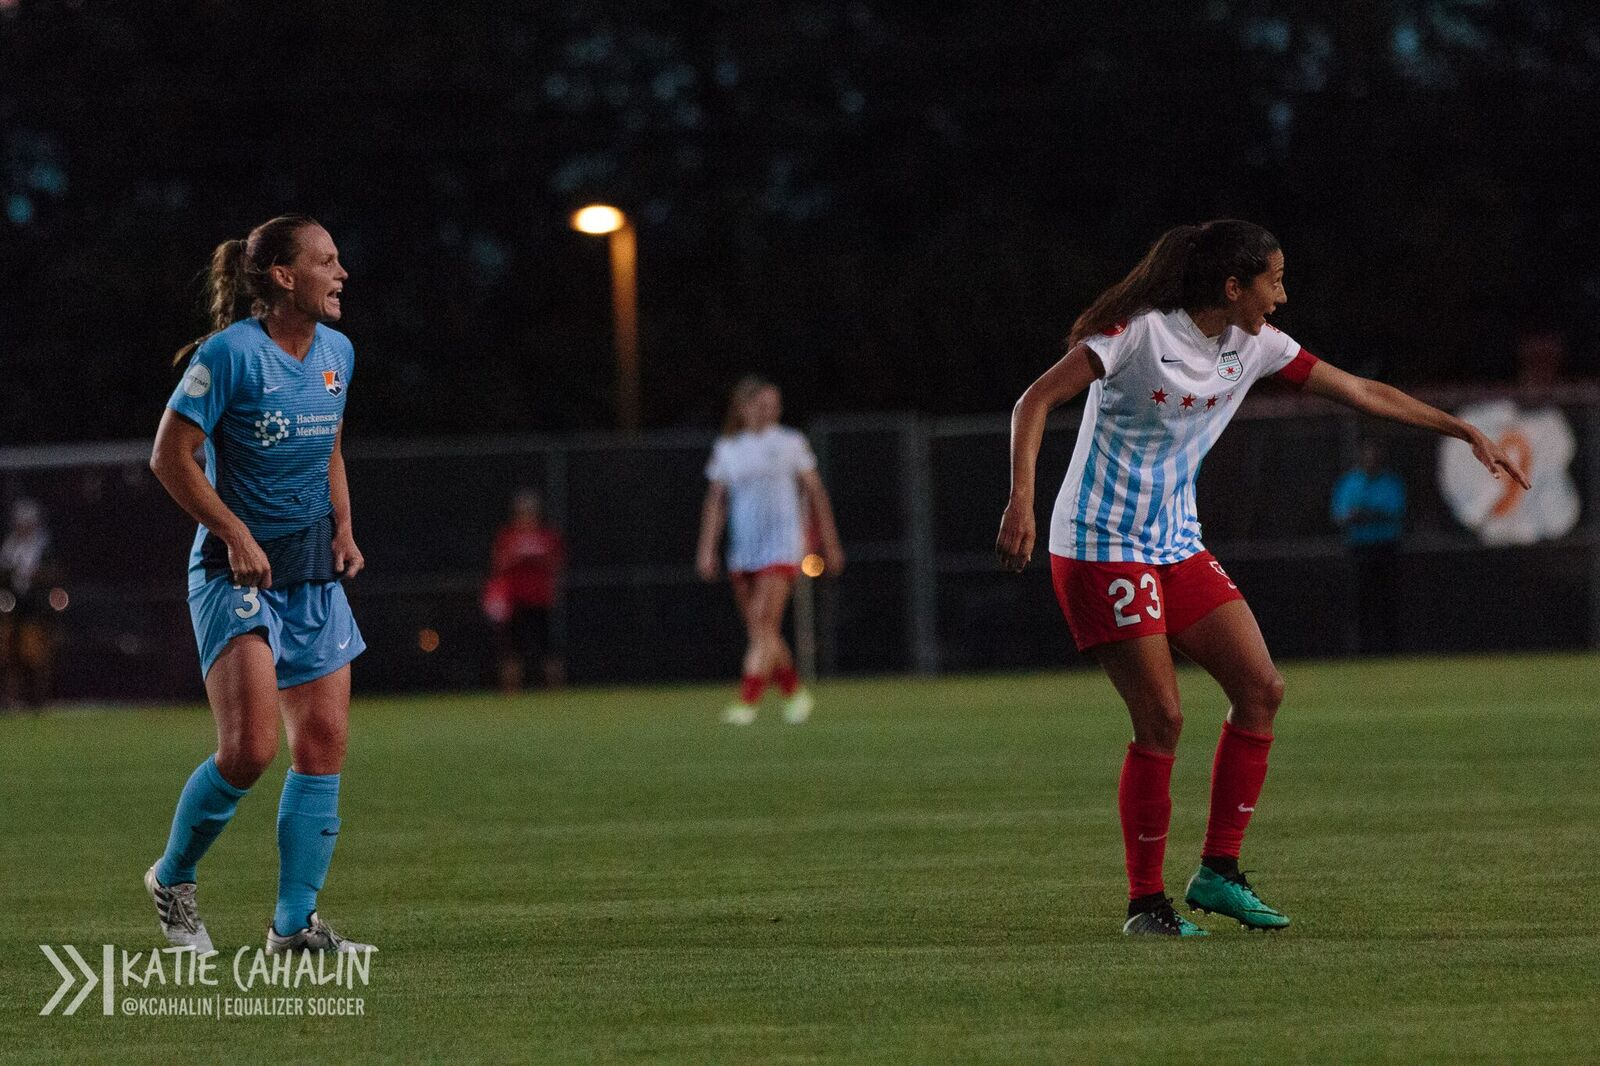 World Cup championsh teammates Christie Pearce (left) and Christen Press during NWSL action on Saturday (photo copyright Katie Cahalin for The Equalizer)